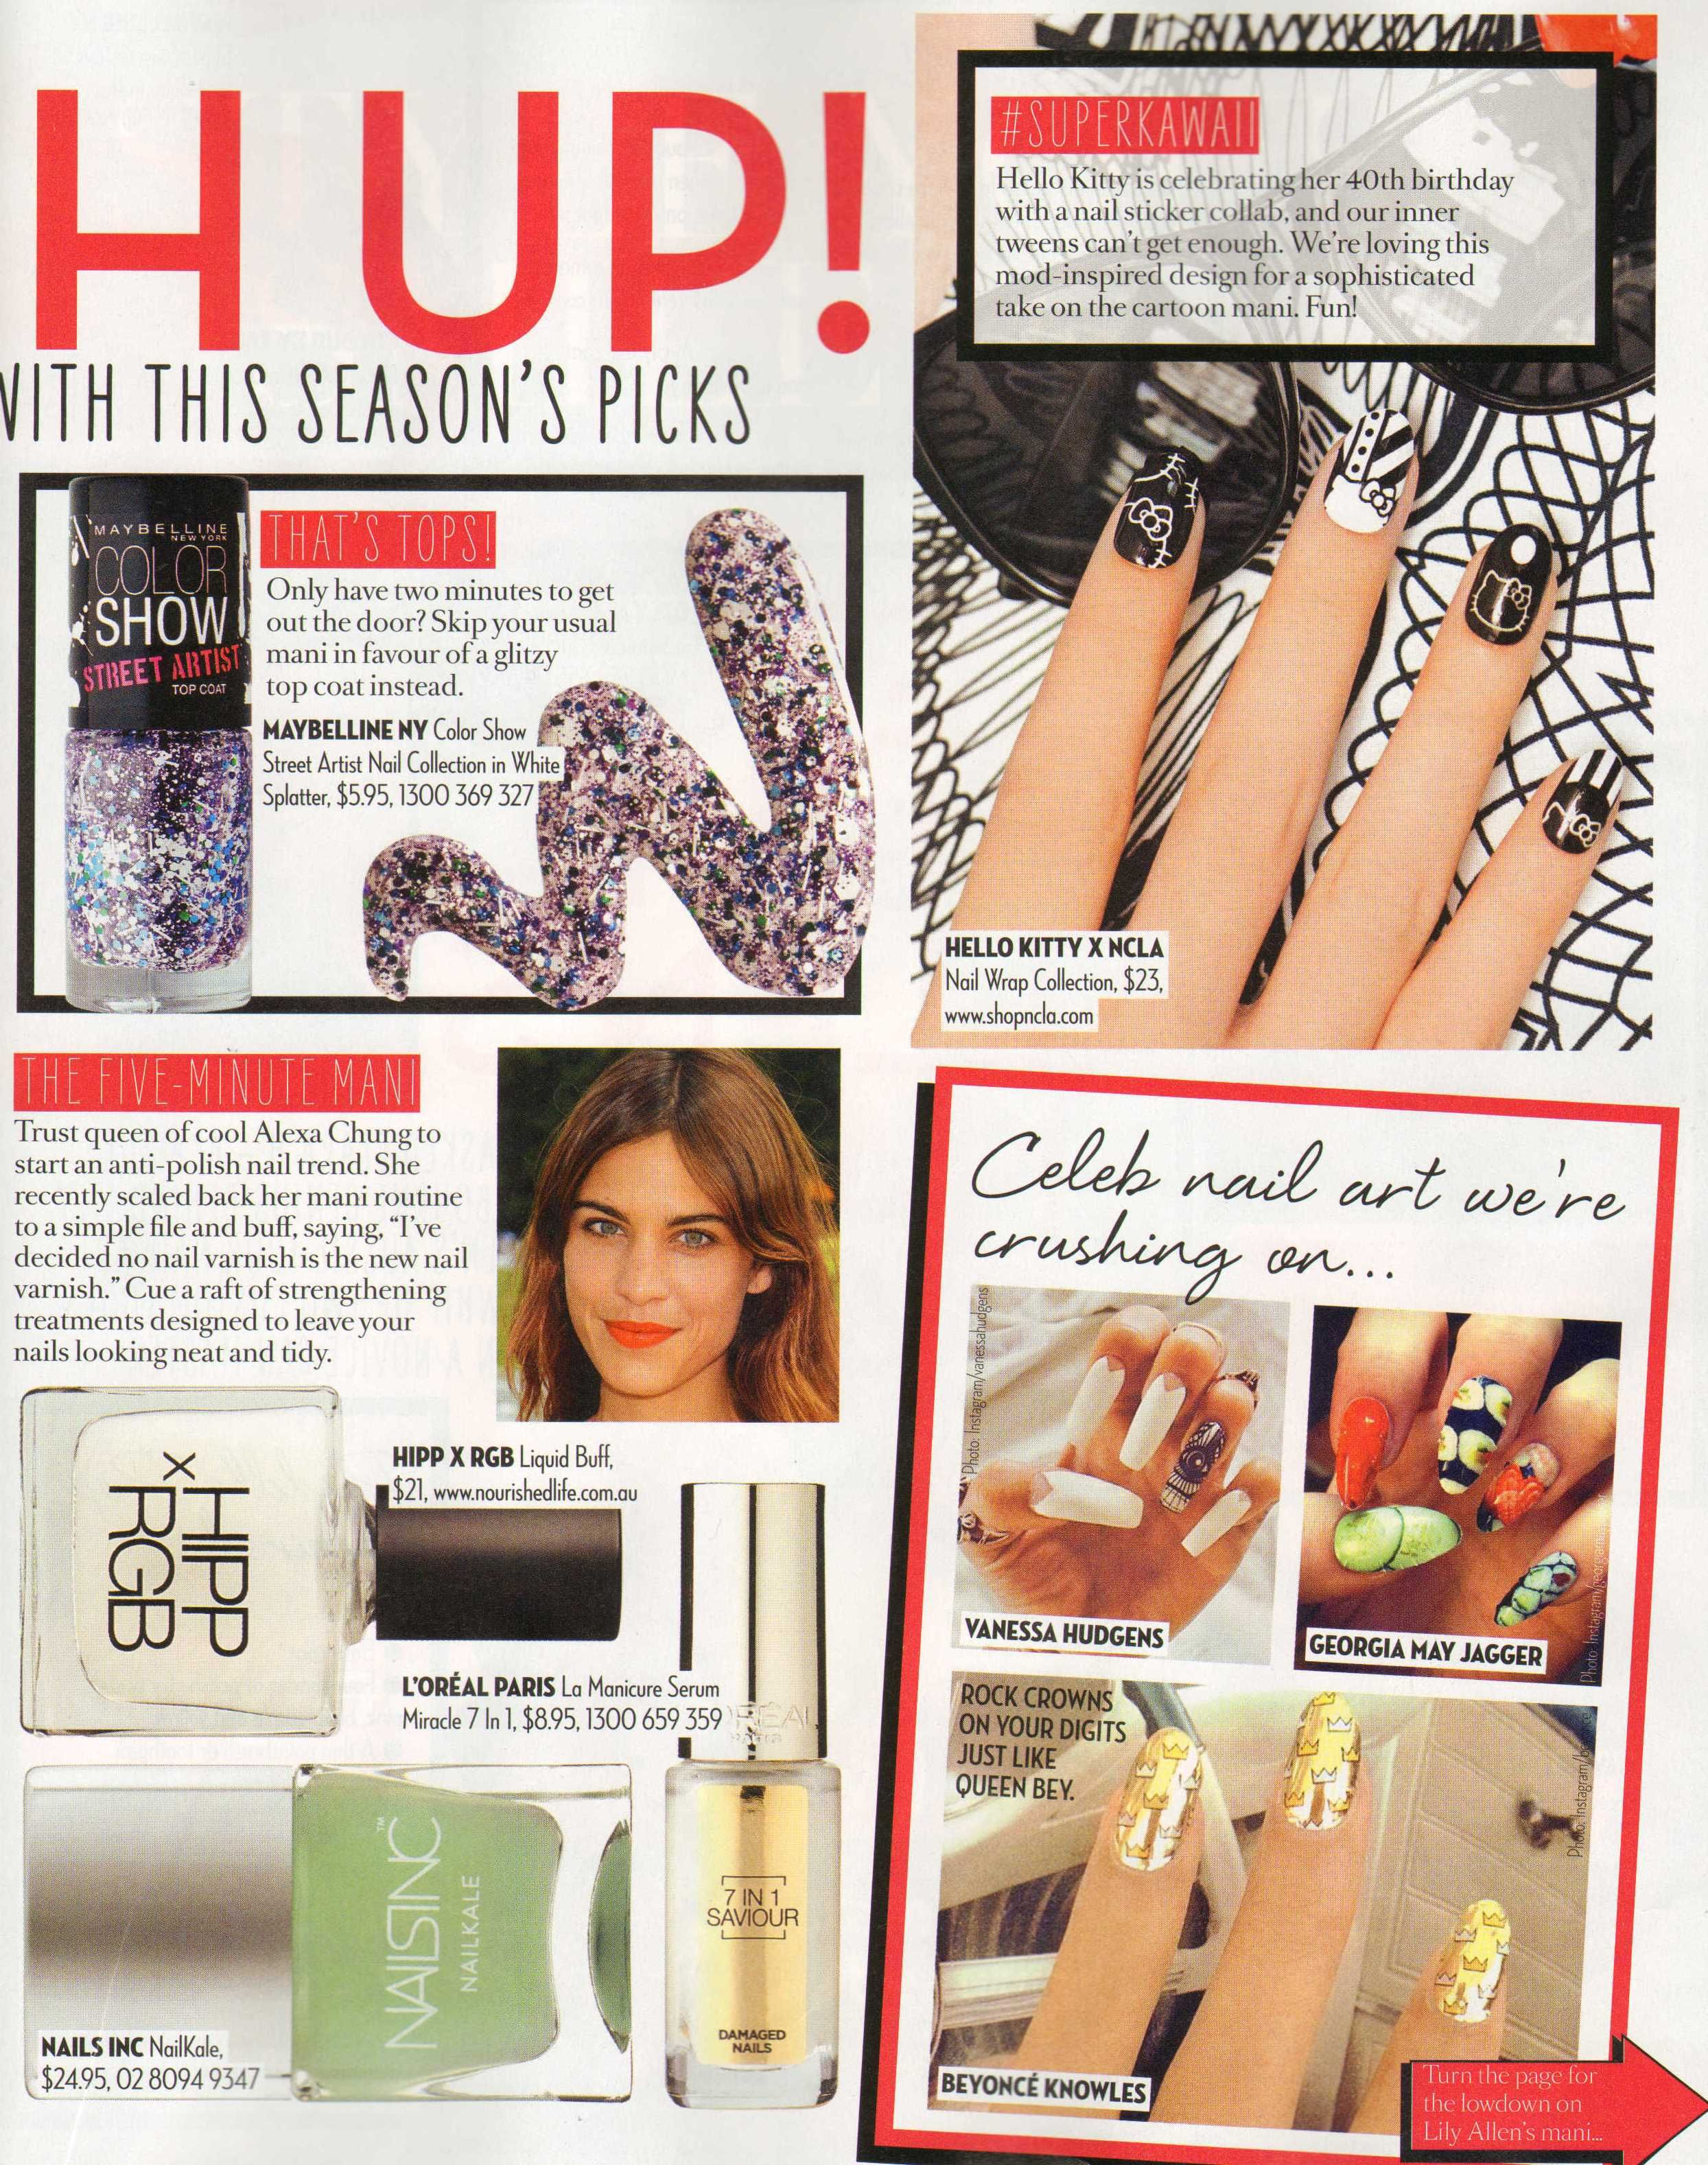 Famous Magazine chooses our RGB nail polish as one of the best nail polishes to make your nails look healthy, tidy and buff. Shop now at nourishedlife.com.au